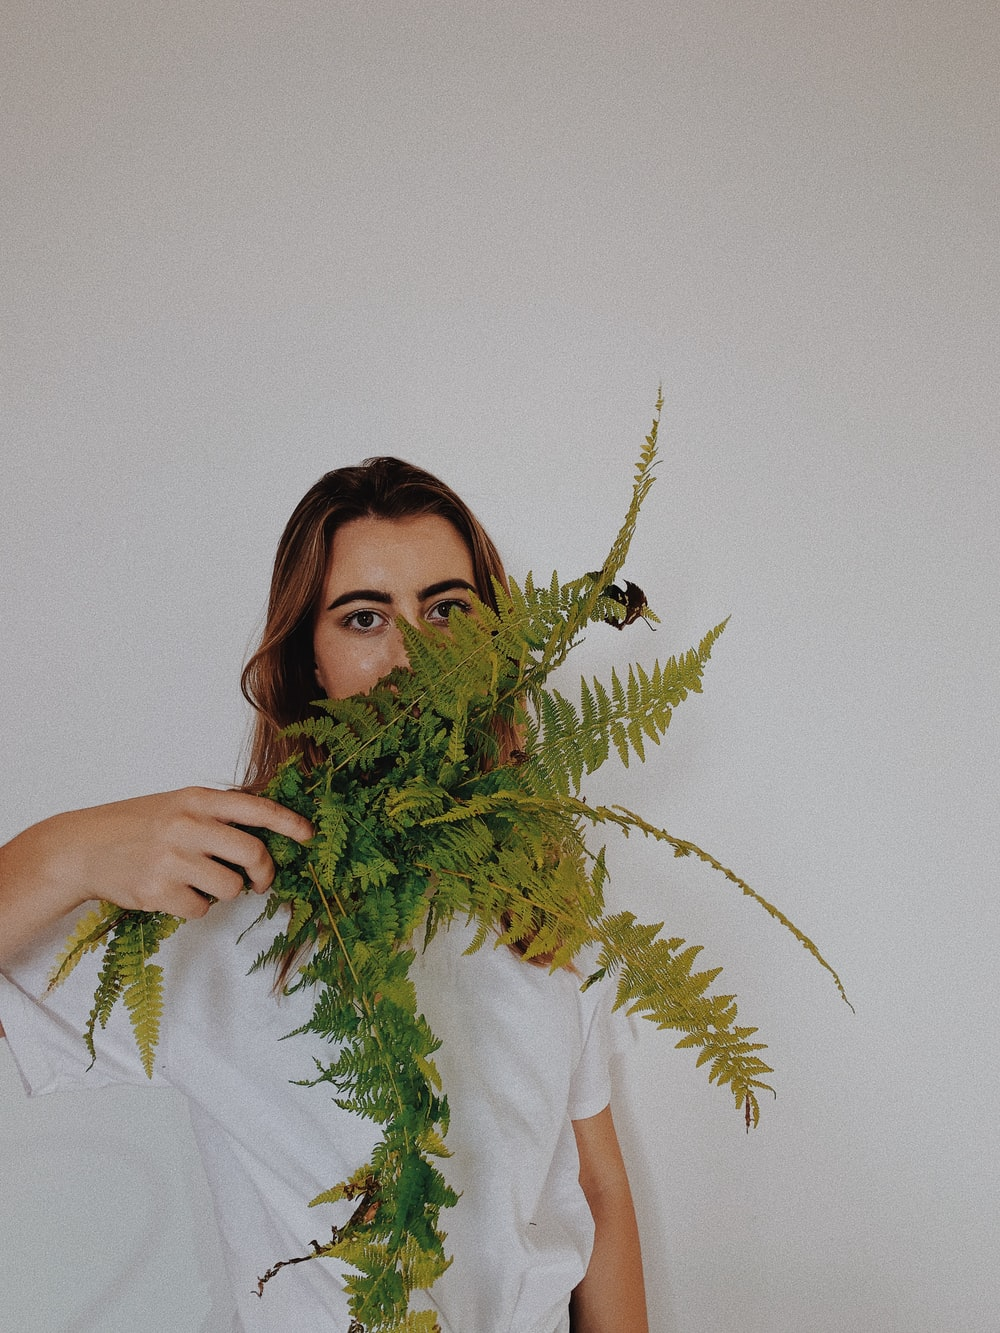 woman in white crew neck t-shirt holding green plant